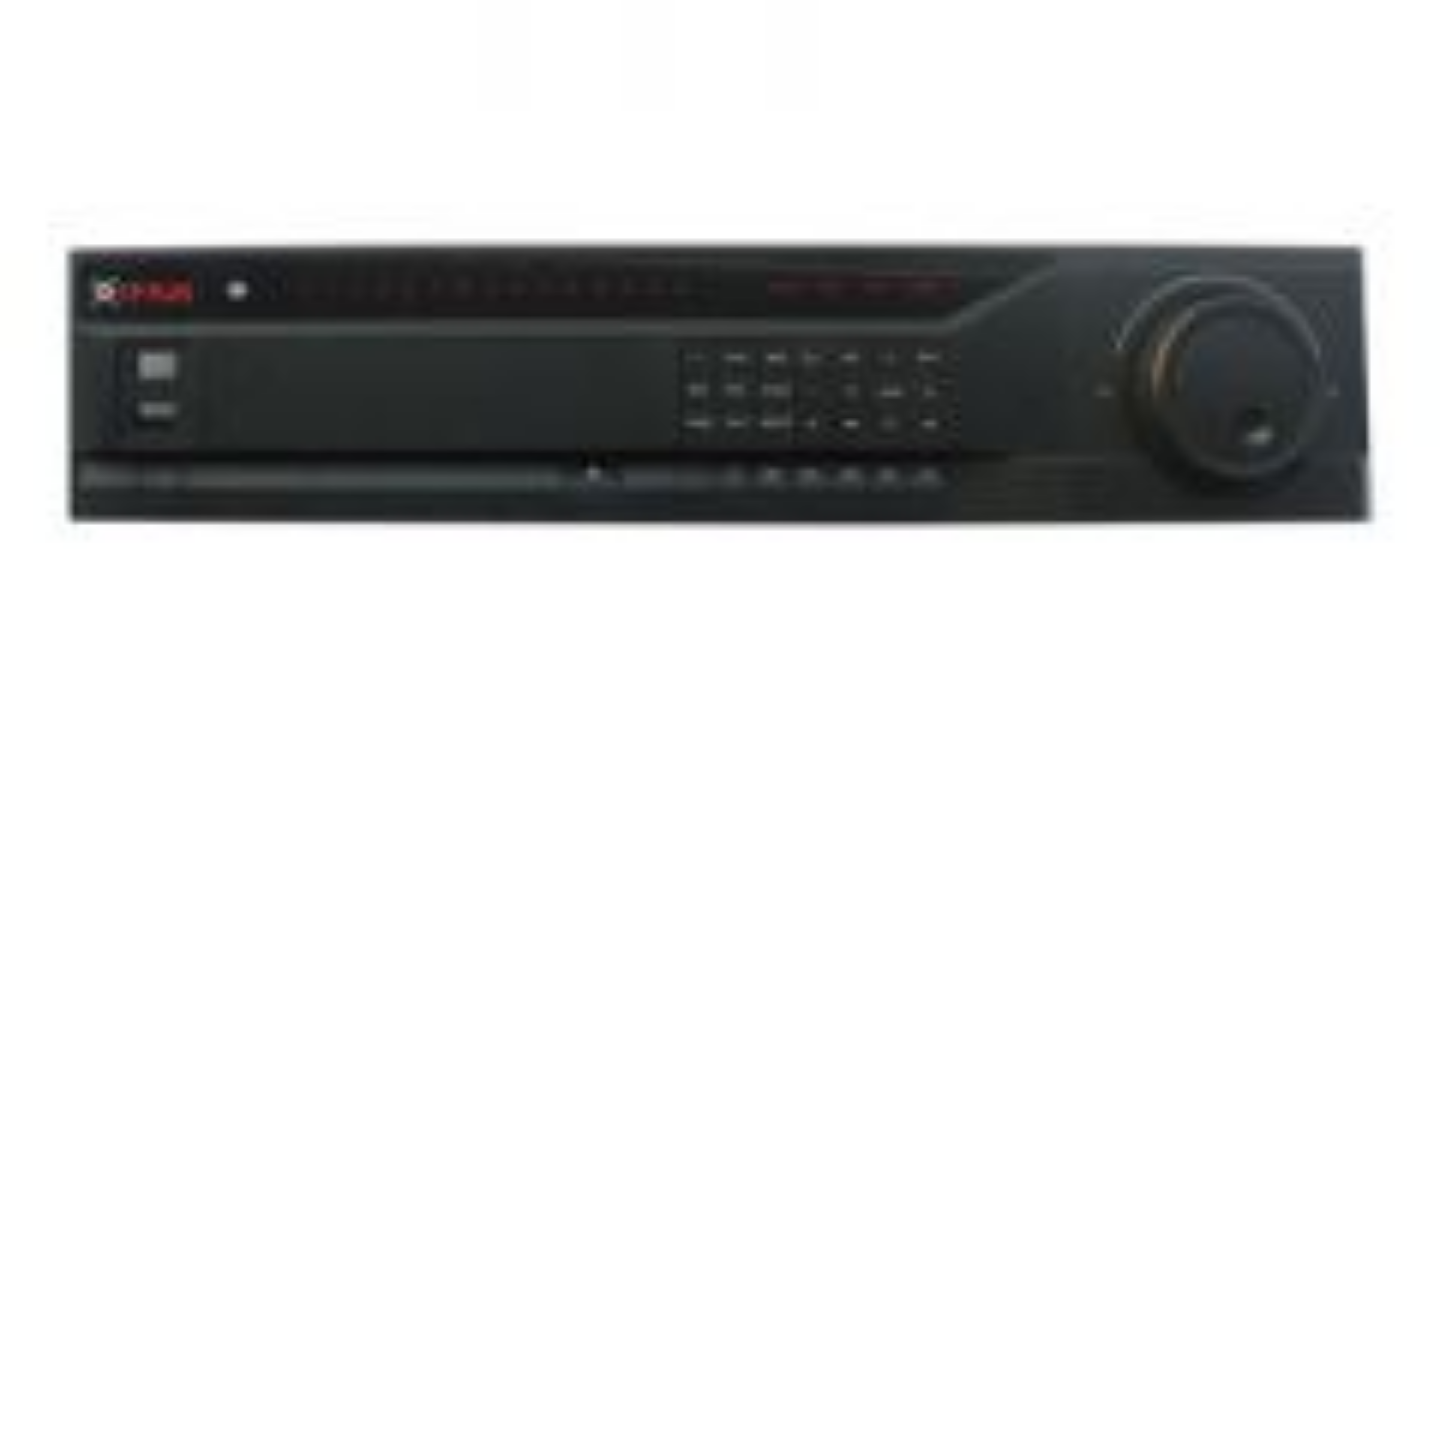 CP Plus 32 Channel Network Video Recorder